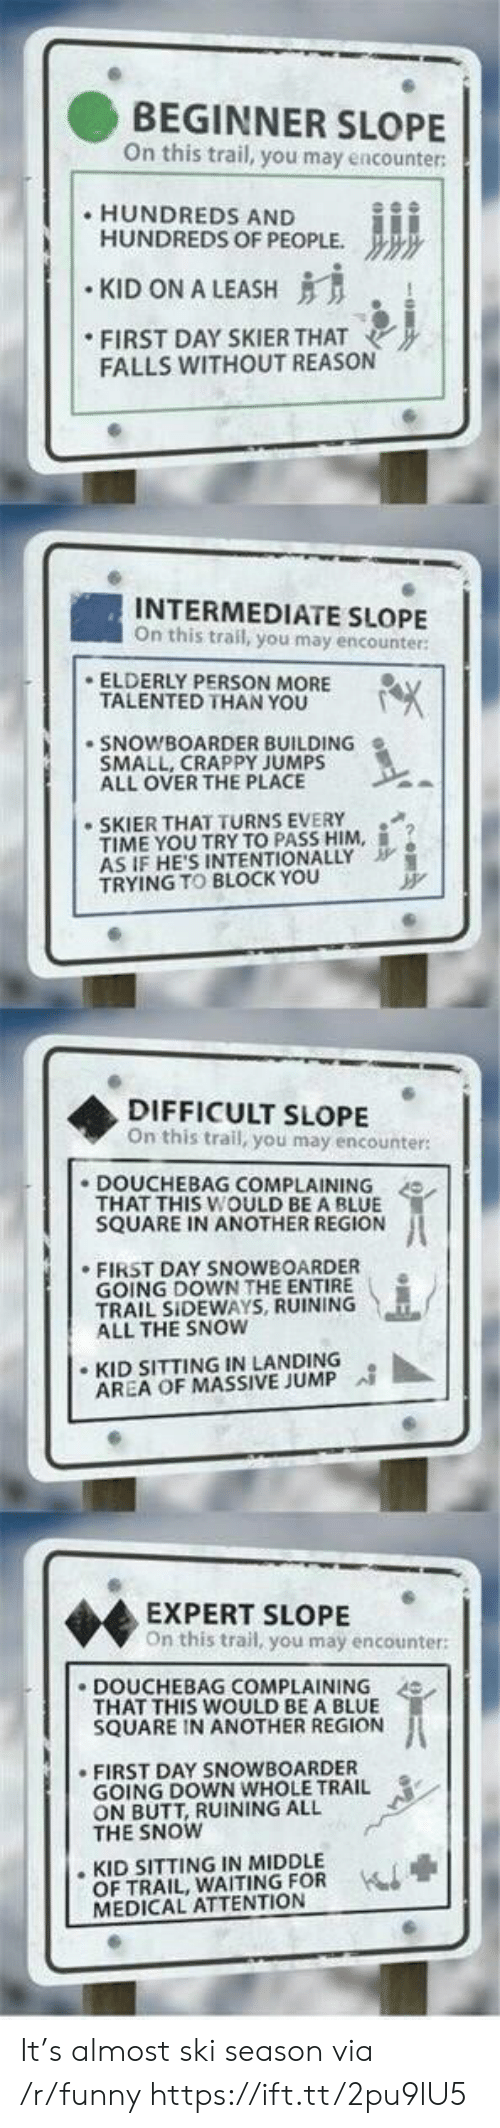 """Butt, Douchebag, and Funny: BEGINNER SLOPE  n this trail, you may encounter  HUNDREDS AND  HUNDREDS OF PEOPLE.  """" KID ON A LEASH  FIRST DAY SKIERTHAT  FALLS WITHOUT REASON  INTERMEDIATE SLOPE  On this trail, you may encounter:  ELDERLY PERSON MORE  TALENTED THAN YOU  SNOWBOARDER BUILDING  SMALL, CRAPPY JUMPS  ALL OVER THE PLACE  SKIER THAT TURNS EVERY  TIME YOU TRYTO PASS HIM, İ.  AS IF HE'S INTENTIONALLY  TRYING TO BLOCK YOu  DIFFICULT SLOPE  On this trail, you may encounter  DOUCHEBAG COMPLAINING  THAT THIS WOULD BE A BLUE  SQUARE IN ANOTHER REGION  .FIRST DAY SNOWBOARDER  GOING DOWN THE ENTIRE .  TRAIL SIDEWAYS, RUINING  ALL THE SNOW  ·KID SITTING IN LANDING  AREA OF MASSIVE JUMP  EXPERT SLOPE  On this trail, you may encounter:  DOUCHEBAG COMPLAINING  THAT THIS WOULD BE A BLUE  SQUARE IN ANOTHER REGION  FIRST DAY SNOWBOARDER  GOING DOWN WHOLE TRAIL  ON BUTT, RUINING ALL  THE SNOW  . KID SITTING IN MIDDLE  OF TRAIL, WAITING FOR  MEDICAL ATTENTION It's almost ski season via /r/funny https://ift.tt/2pu9lU5"""